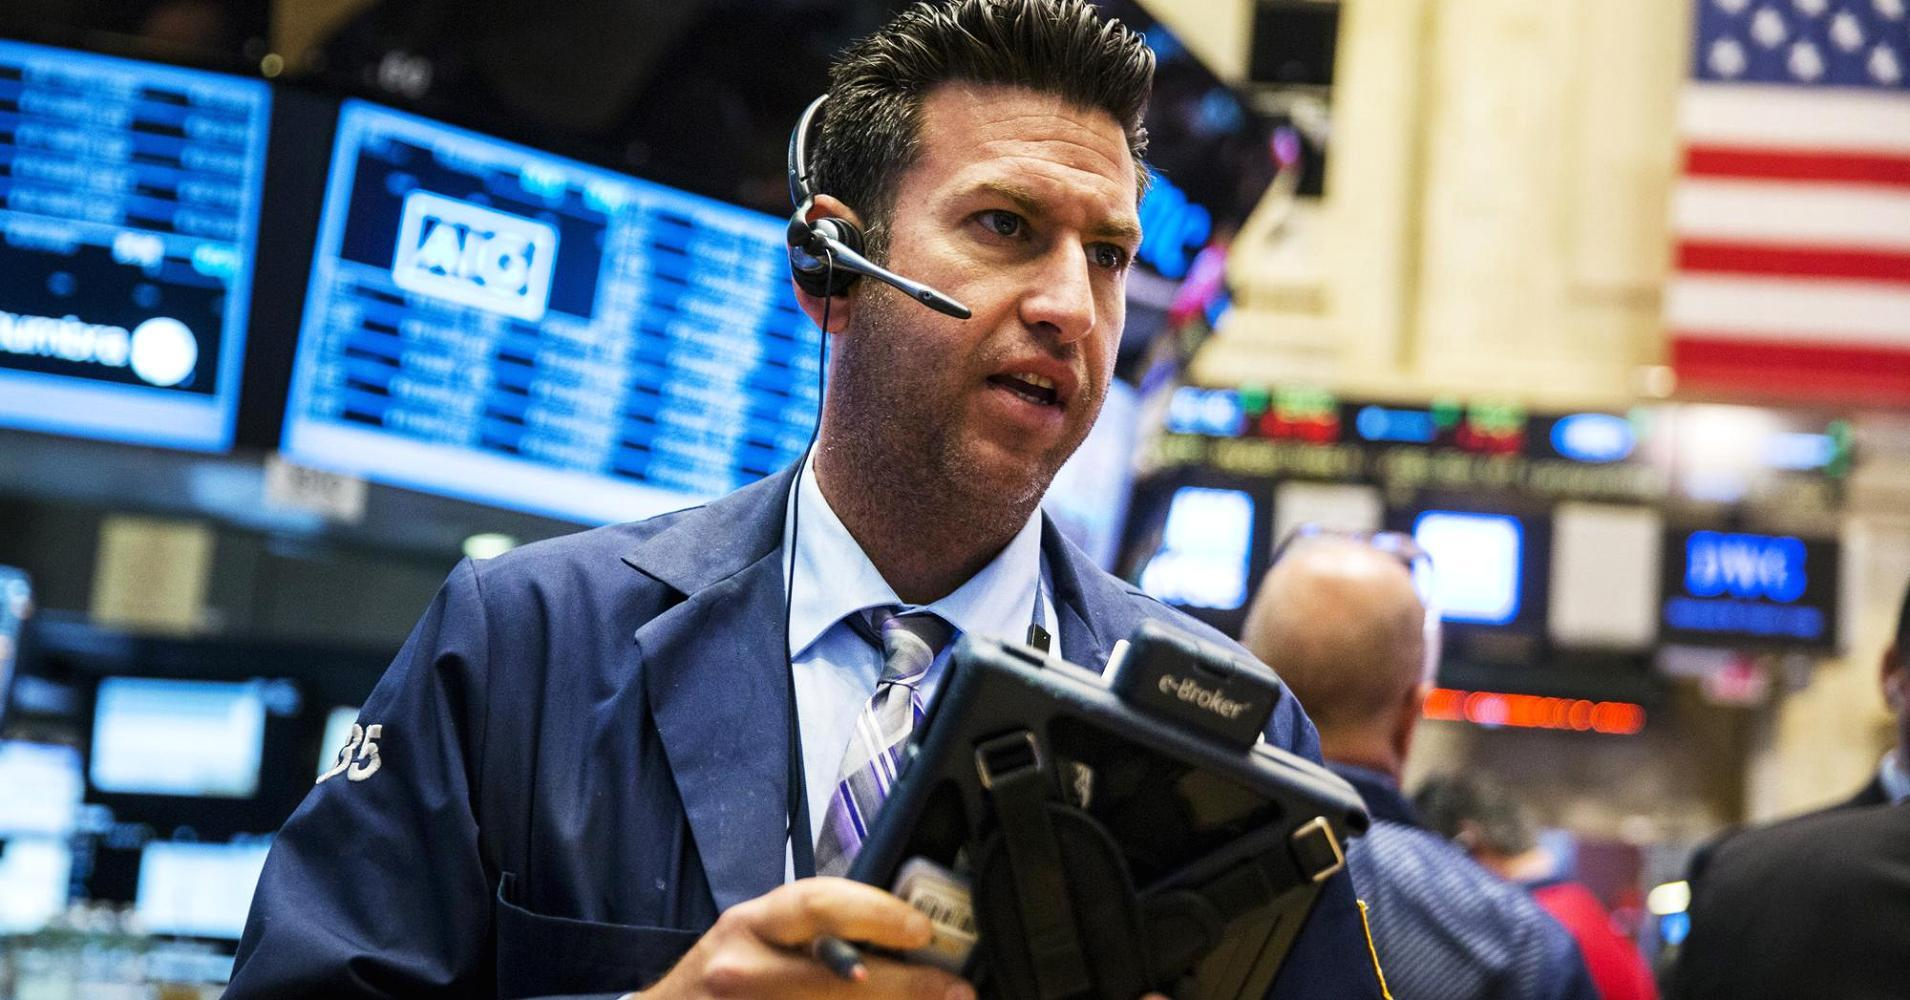 Early movers: HAS, DO, CTSH, APOL, TWTR & more